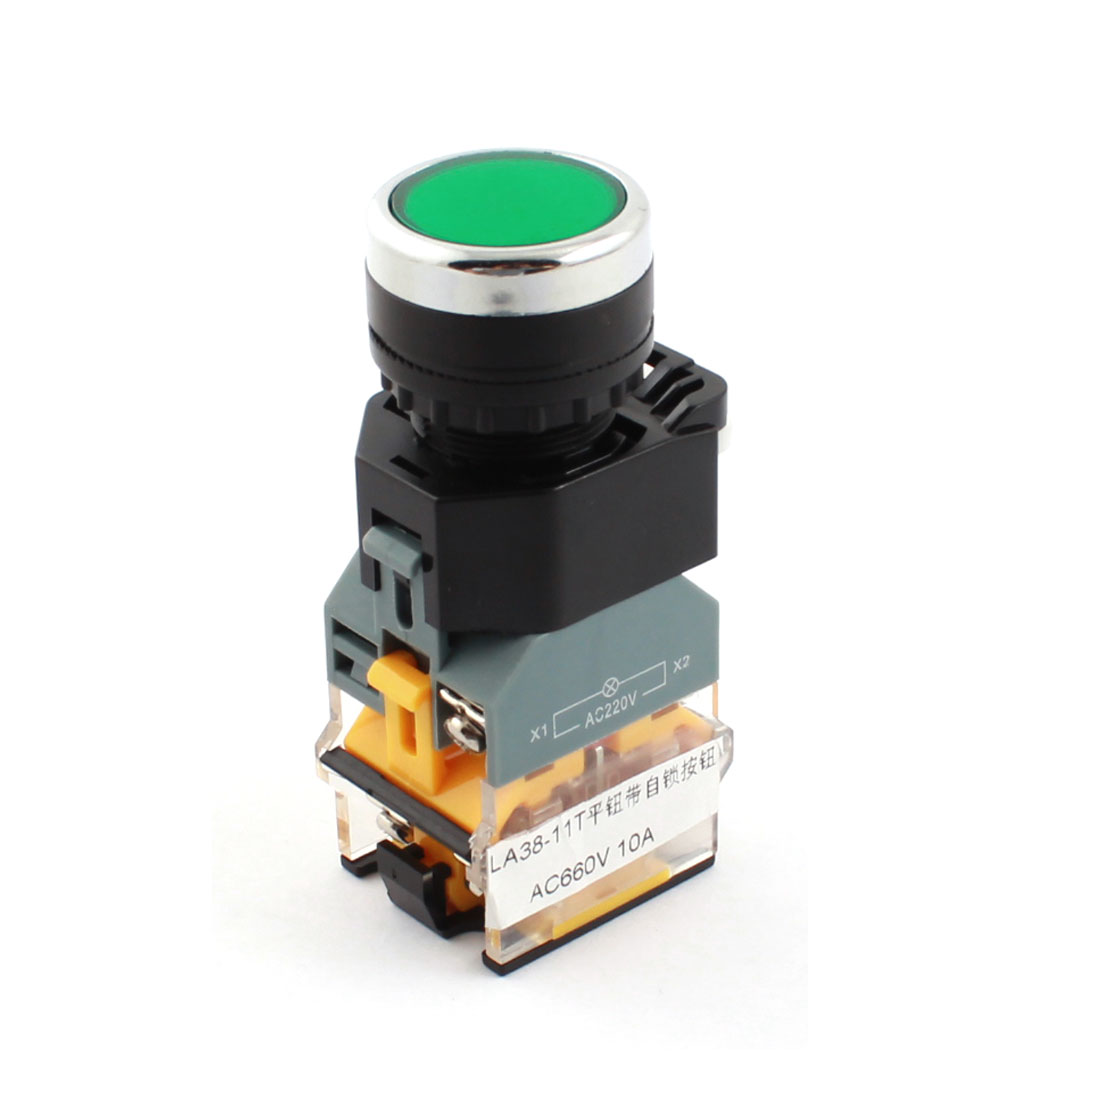 AC 660V 10A 22mm Thread Panel Mount DPST 1NO 1NC 6 Screw Terminals Self-locking Green Lamp Push Button Switch